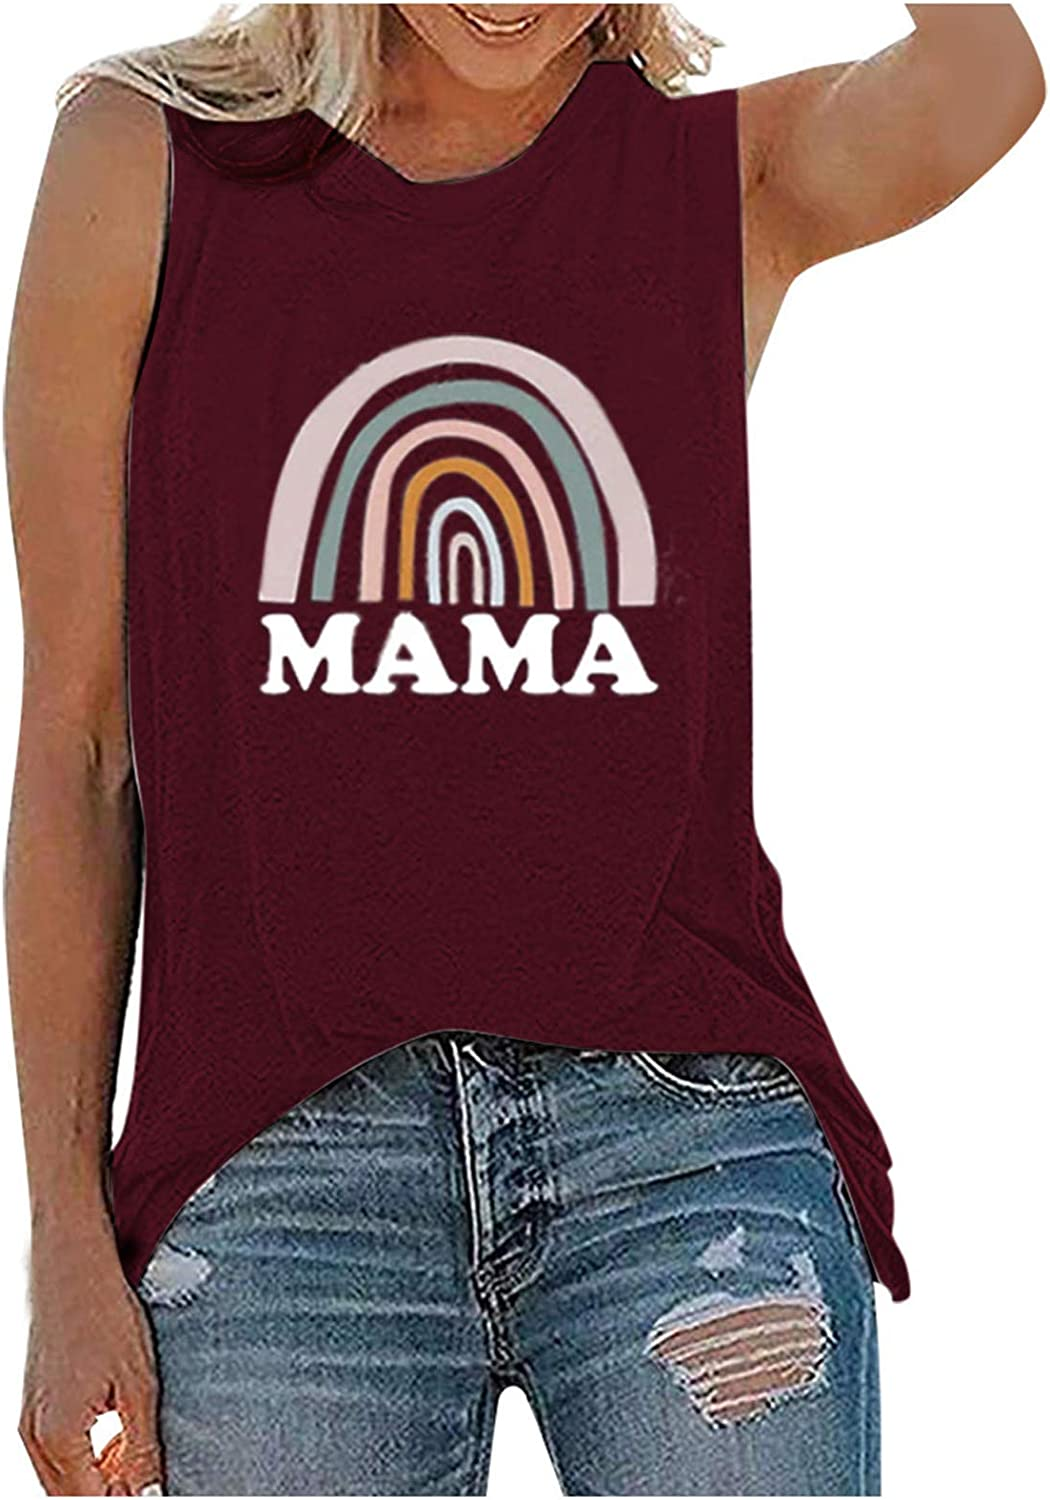 Tank Tops for Women,Womens Tops for Independence Day Womens Summer Tank Tops Crew Neck Sleeveless Tops